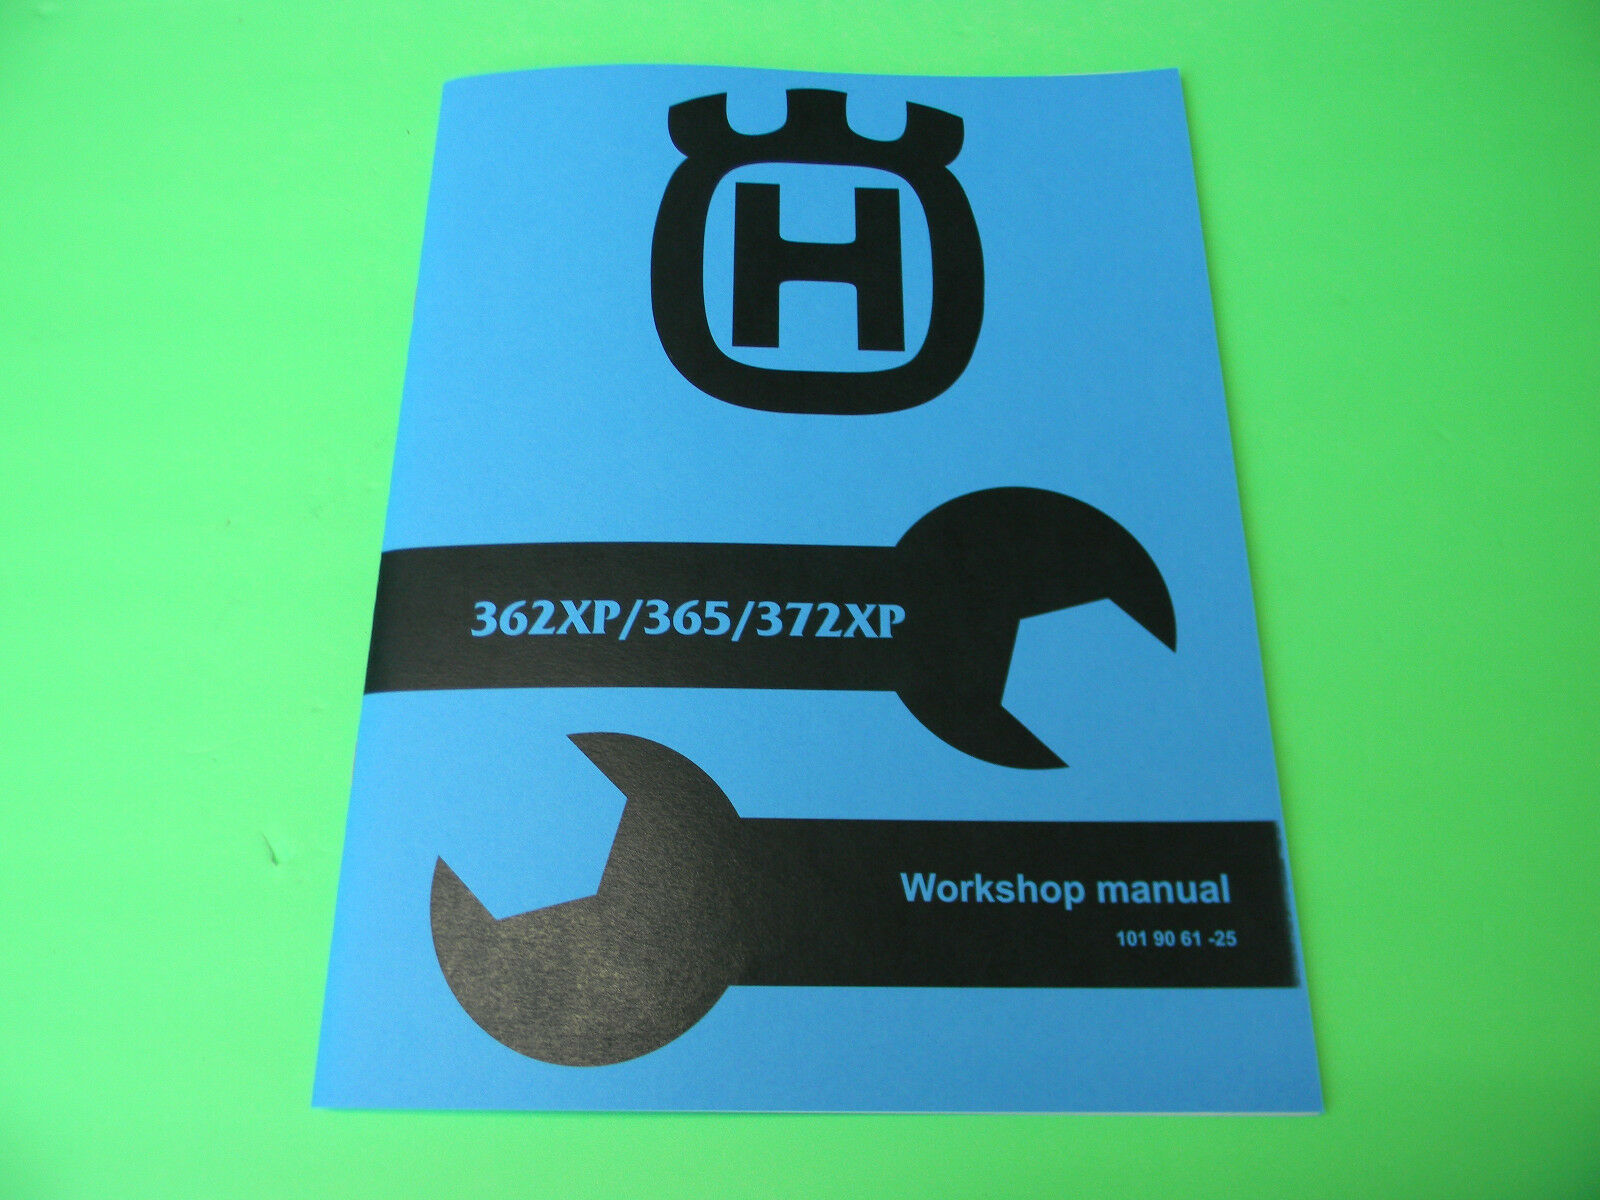 Husqvarna Chainsaw 362Xp 365 372Xp Workshop Service Manual New ------- 1 of  2 See More